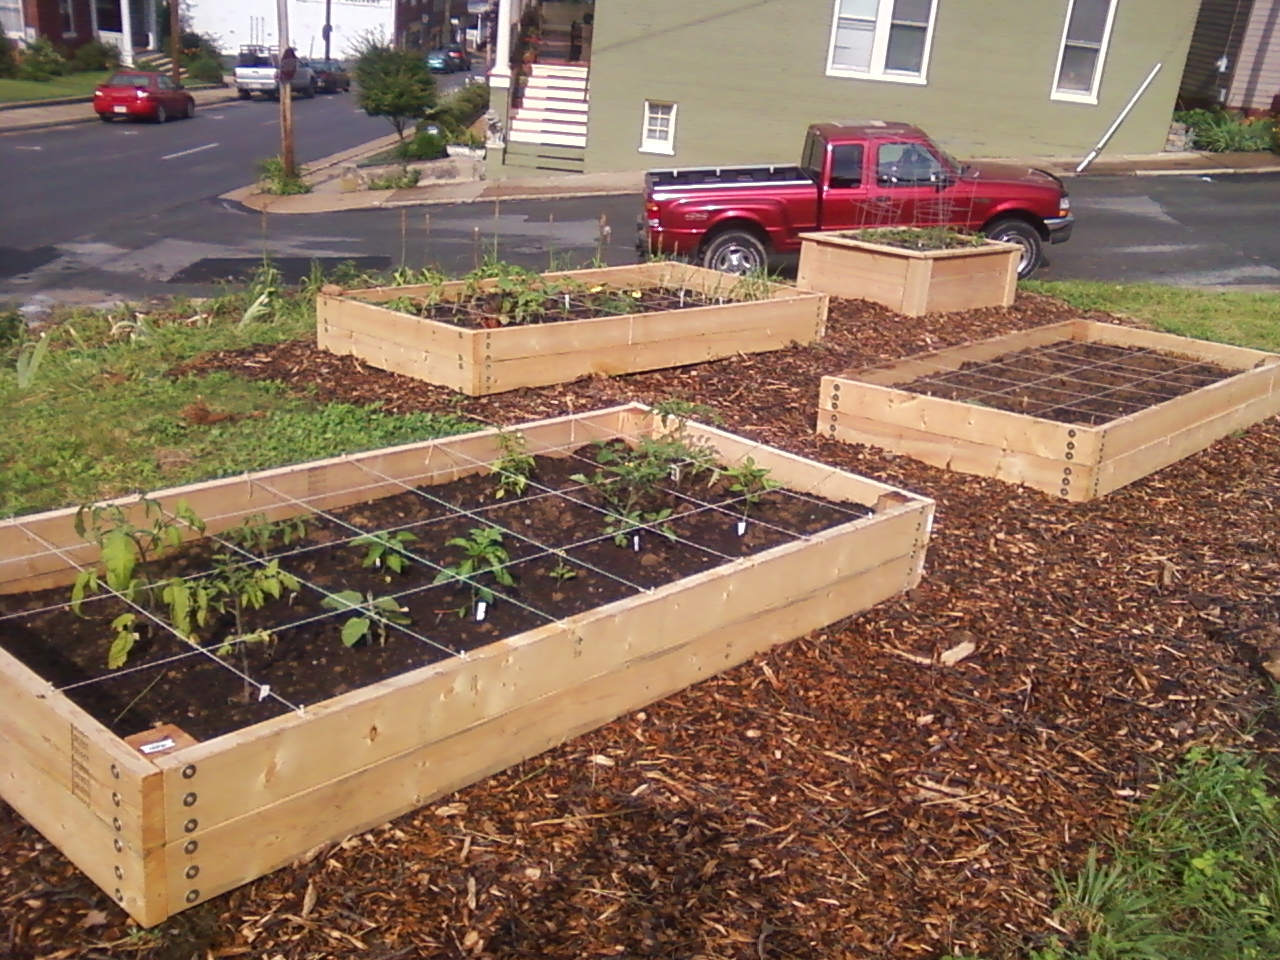 The Local Transition Groupu0027s Brand New Community Garden Needed Raised Beds.  So We Tried A Couple Different Ways To Get Them.